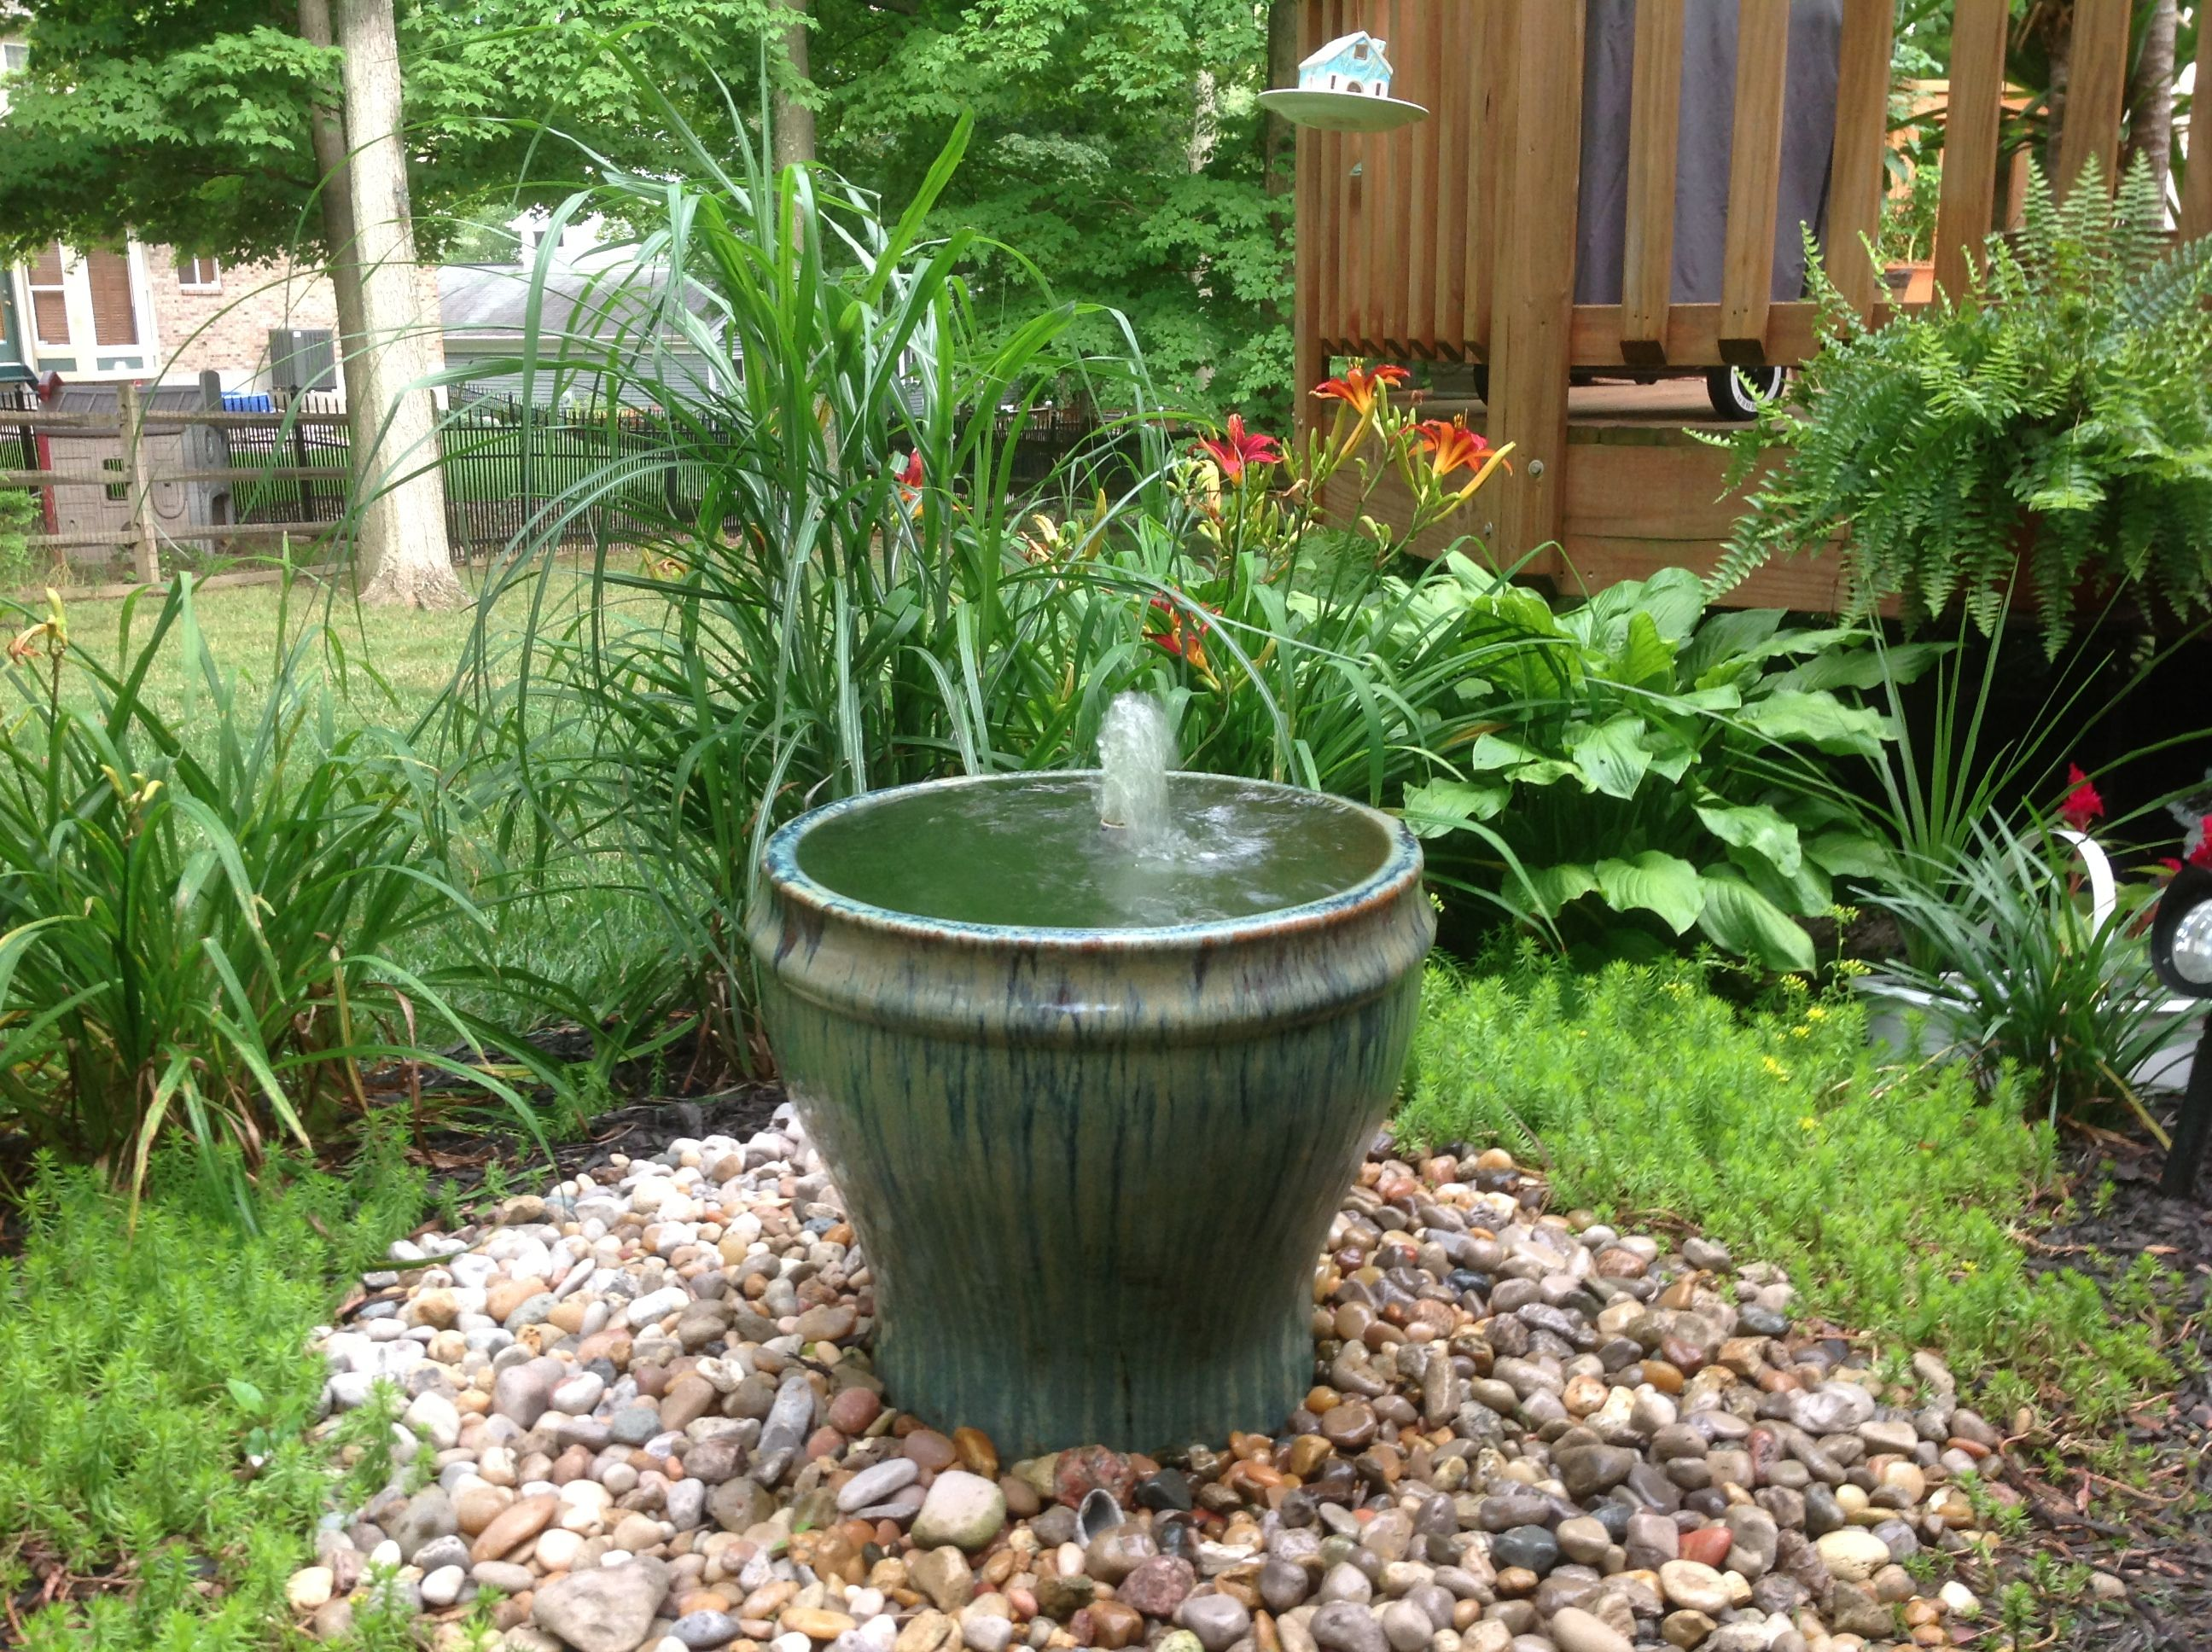 Disearing Fountain I Used A Concrete Mixing Tub And Some On Clearance Grill Grates From Box